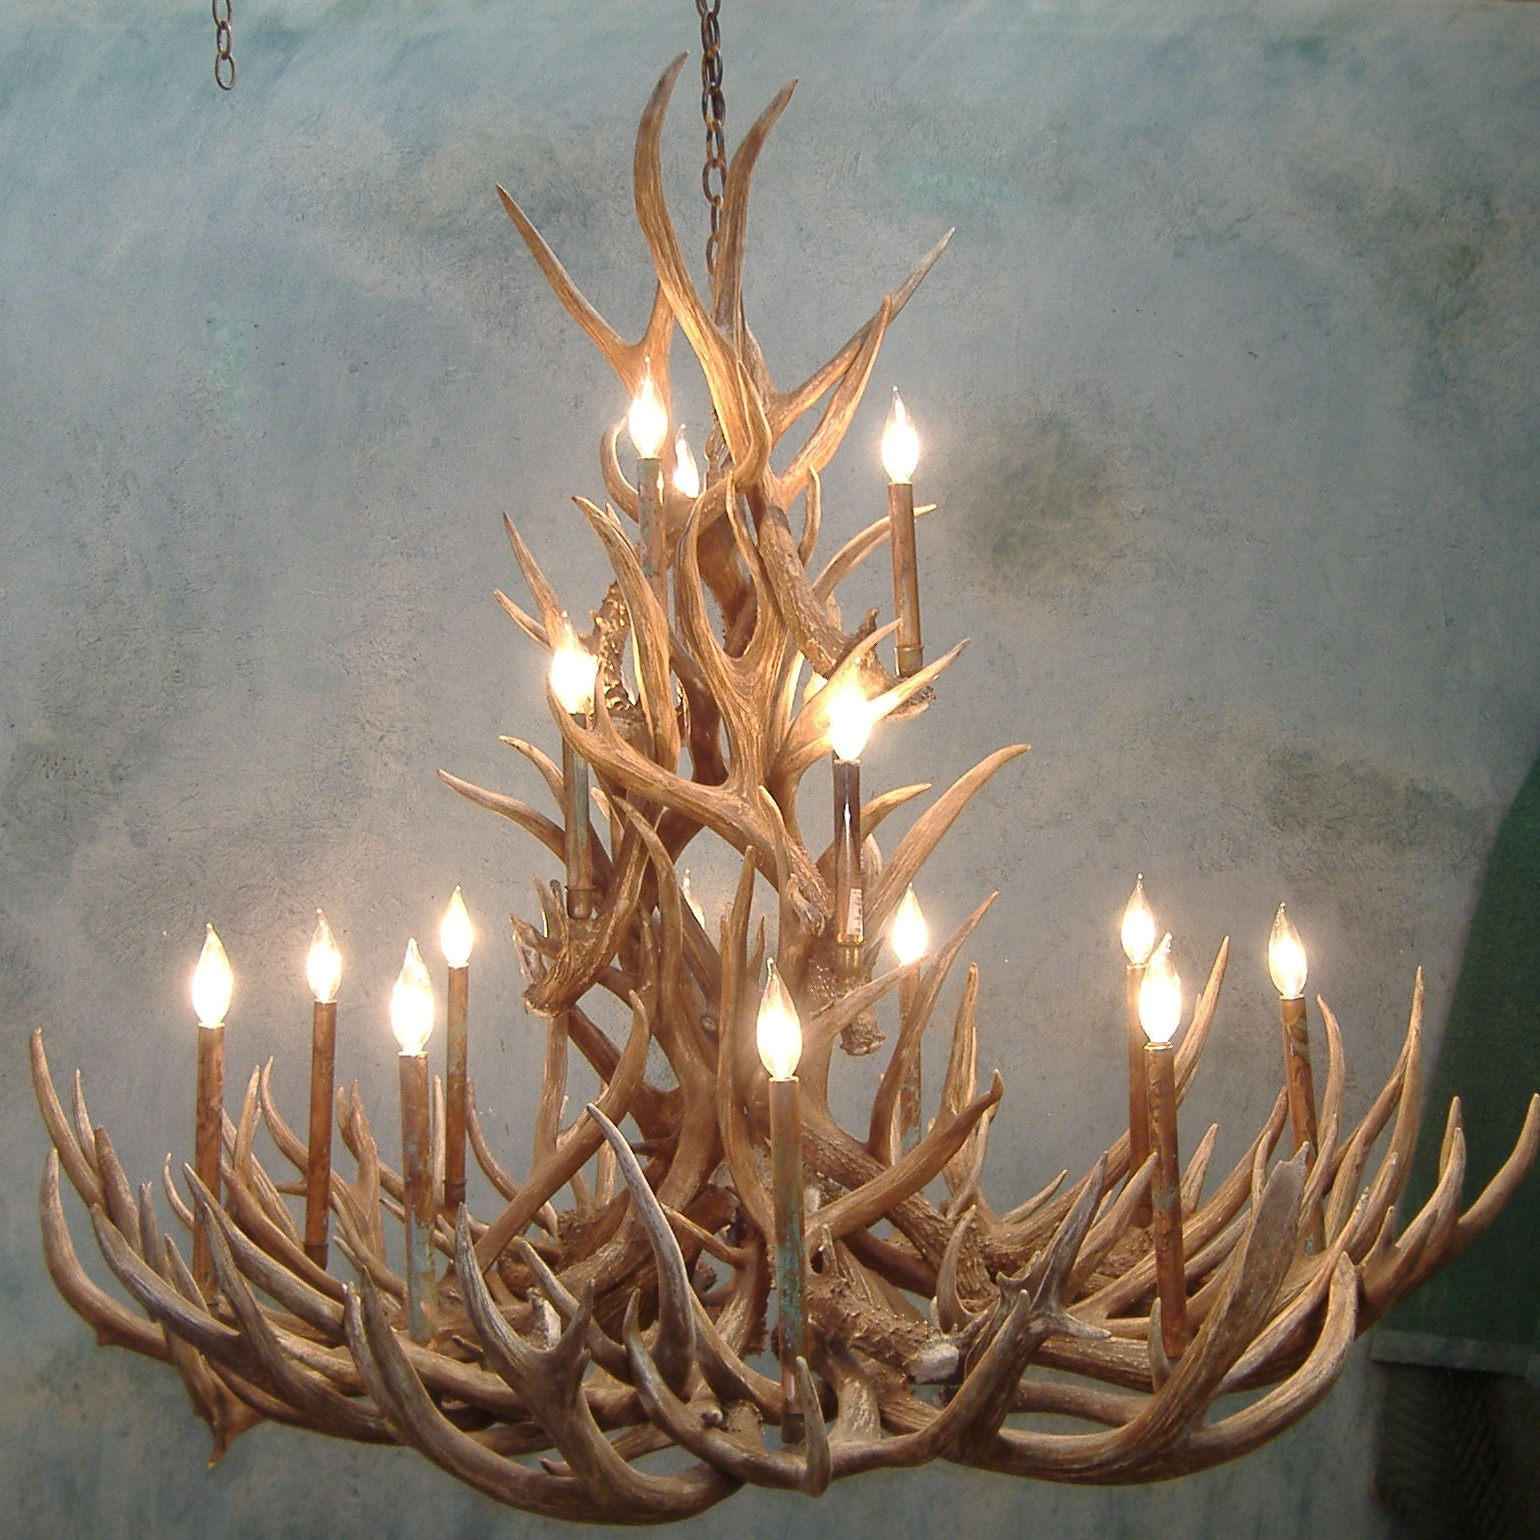 Deer Horn Chandelier Lightupmyparty Pertaining To Antlers Chandeliers (Image 4 of 15)